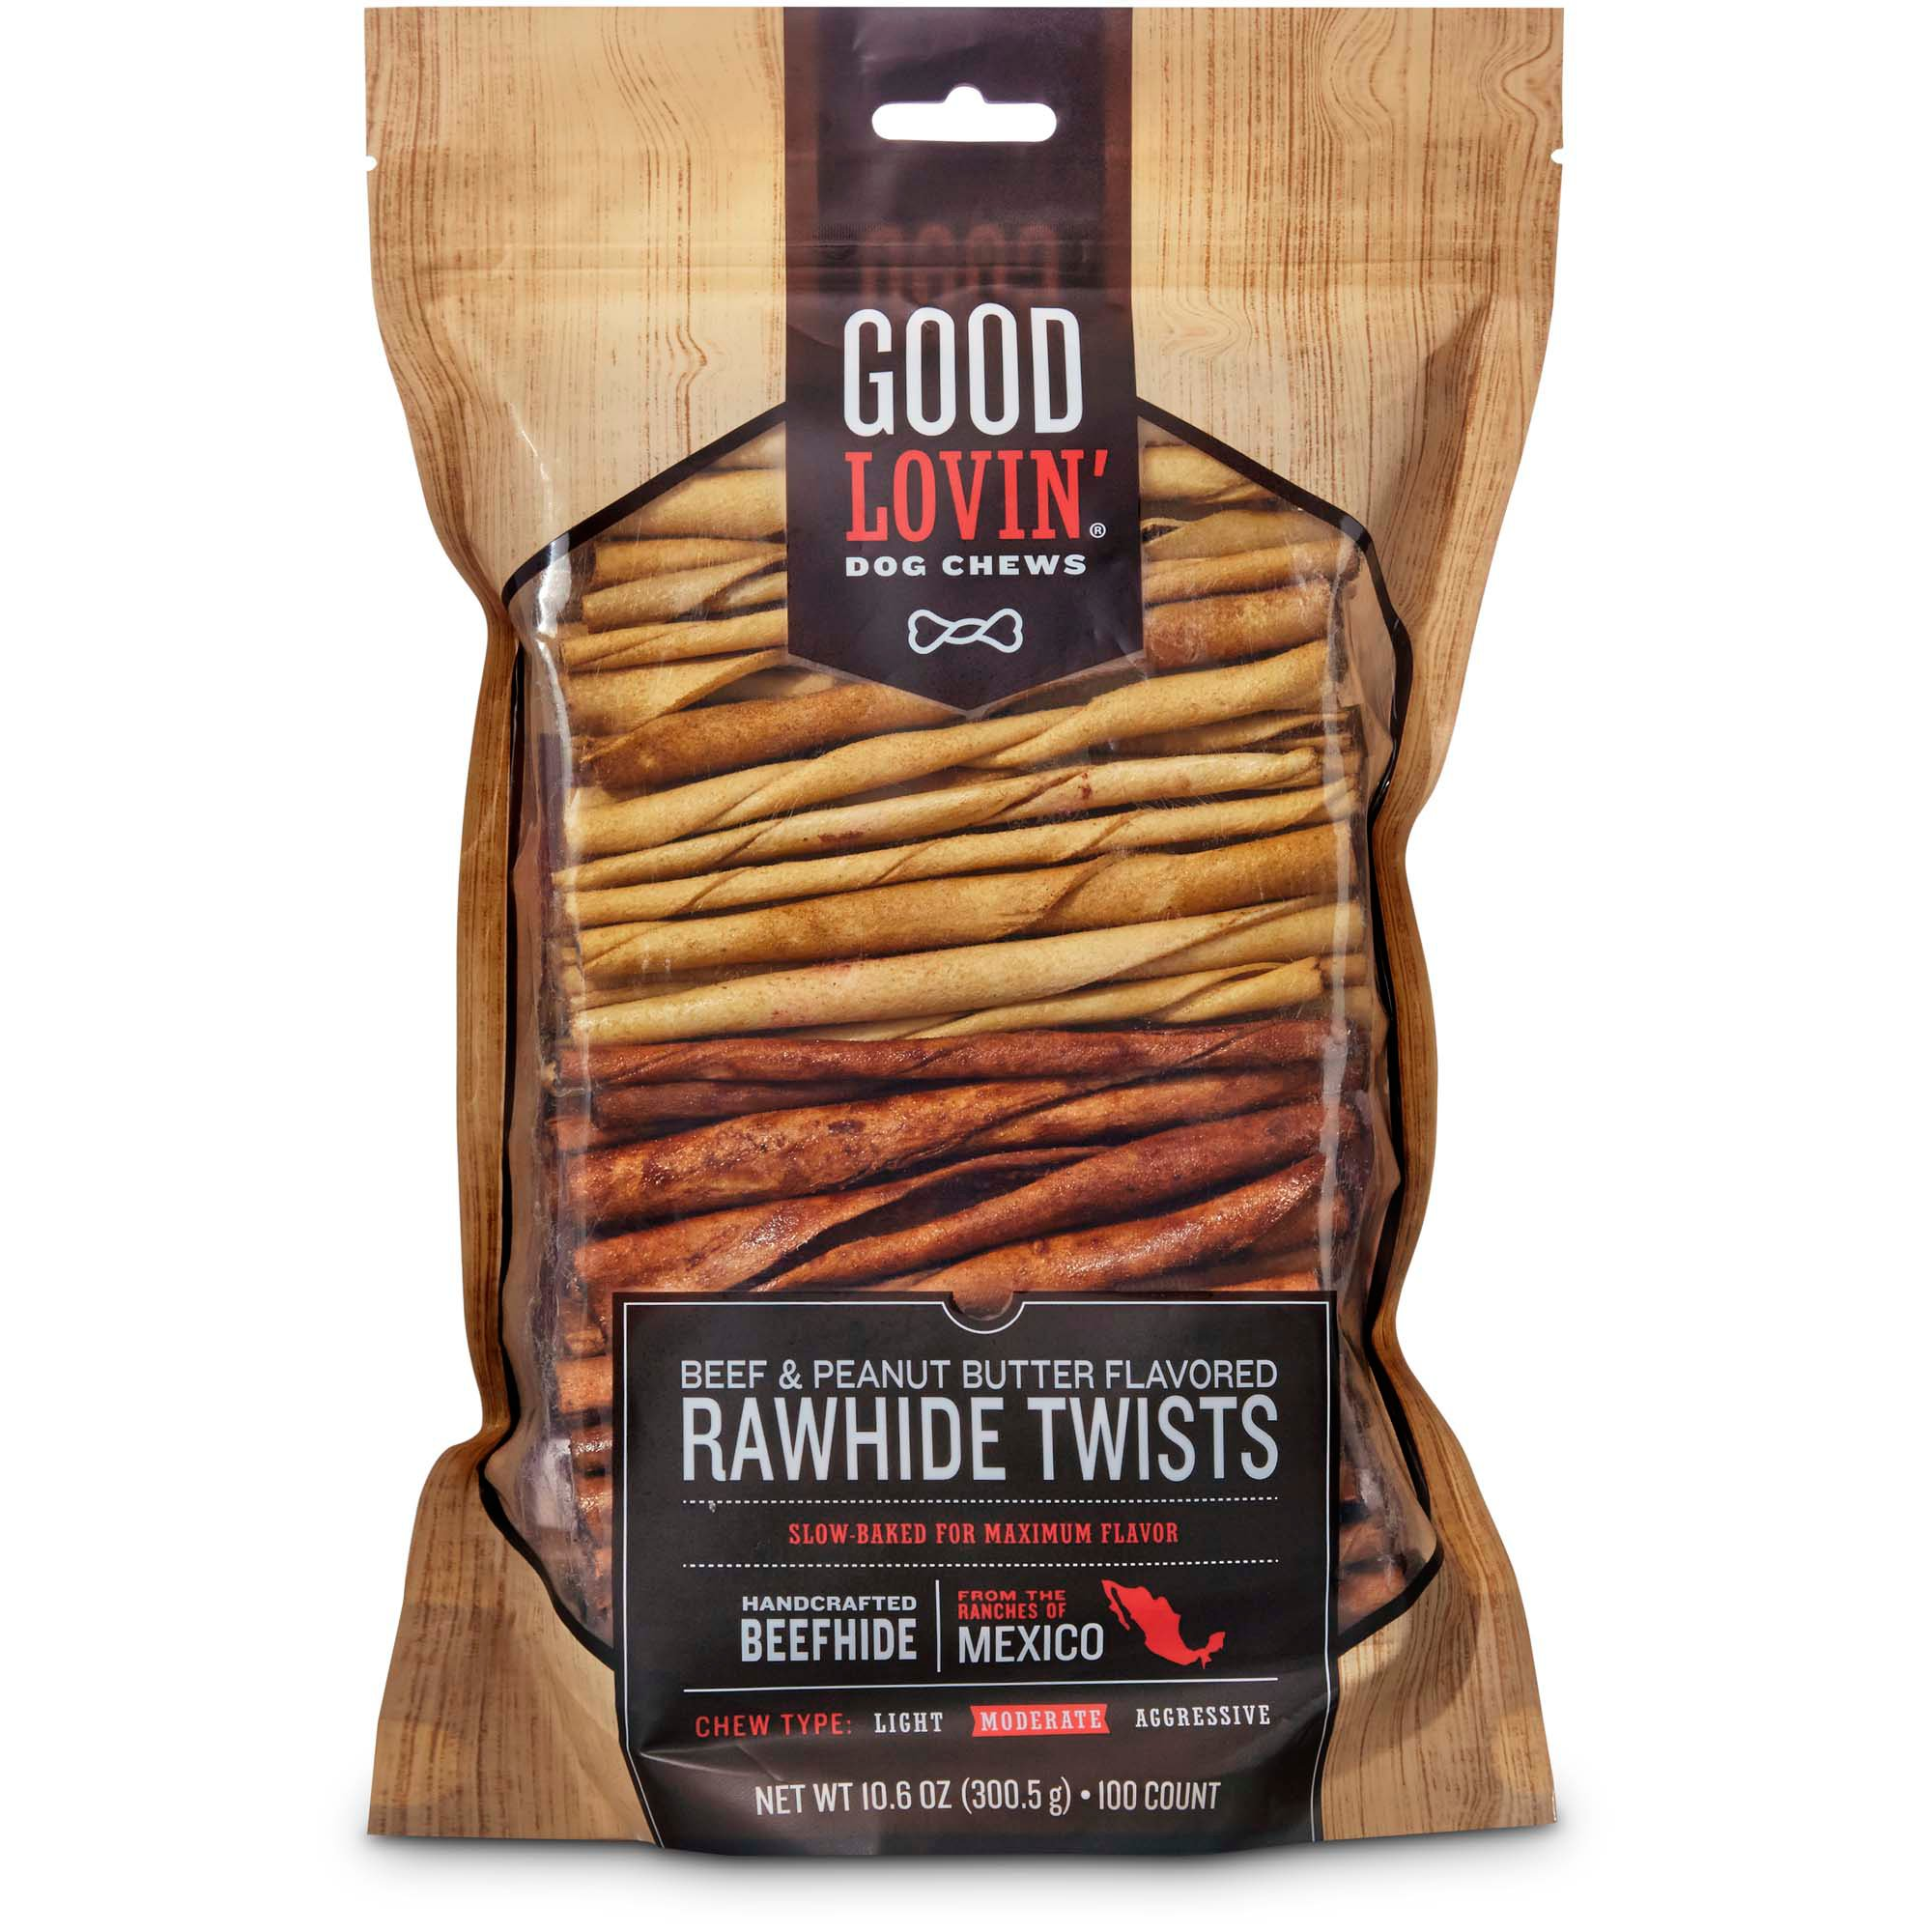 Good Lovin Beef And Peanut Butter Flavored Rawhide Twist